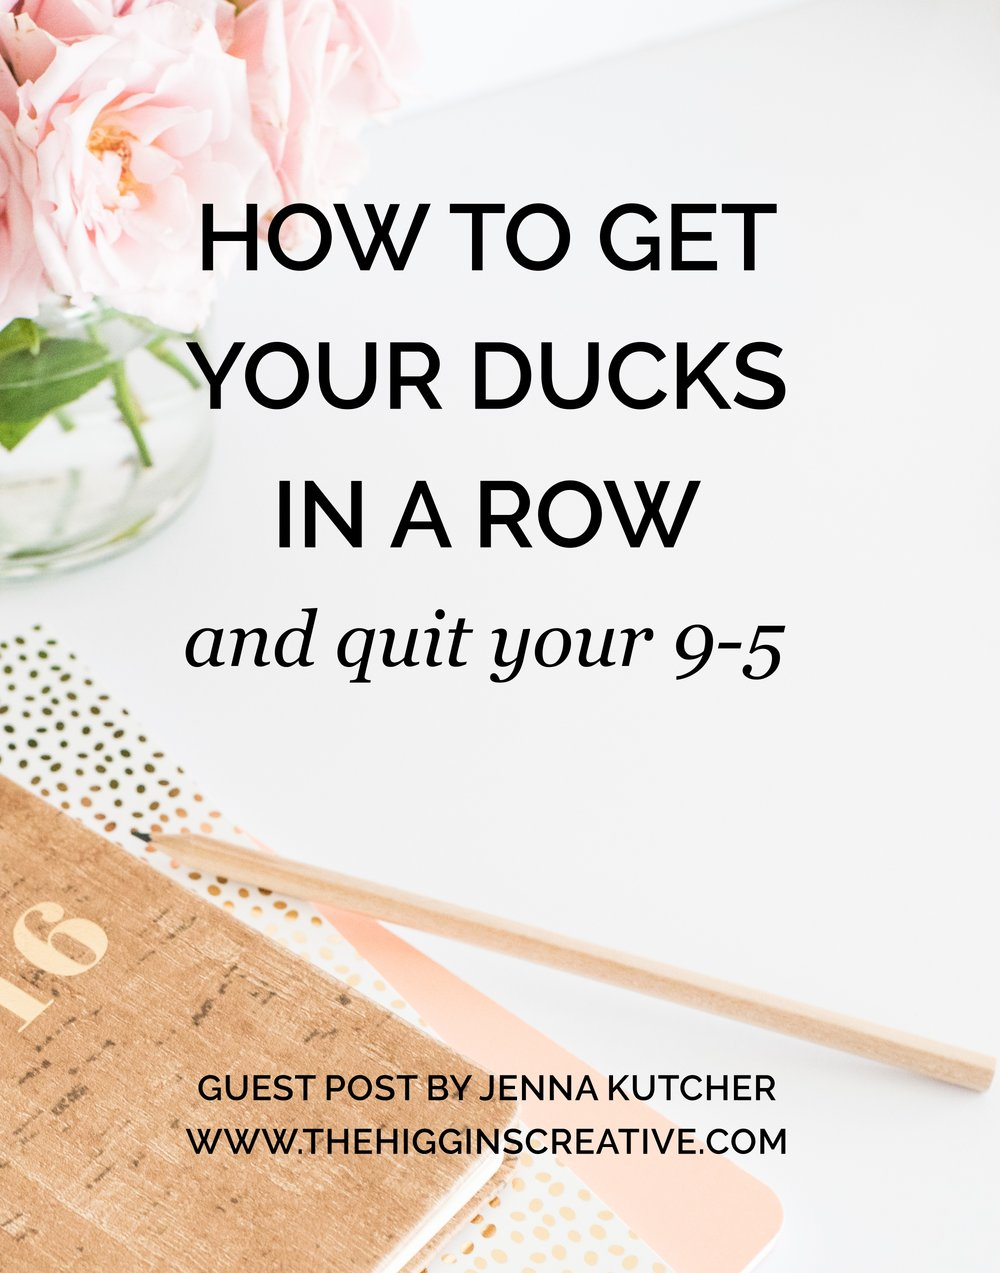 Jenna Kutcher takes us through her journey quitting her 9 to 5 and starting her own business. See the steps you need to take to get all your ducks in a row so you can finally quit your day job and start your own biz.